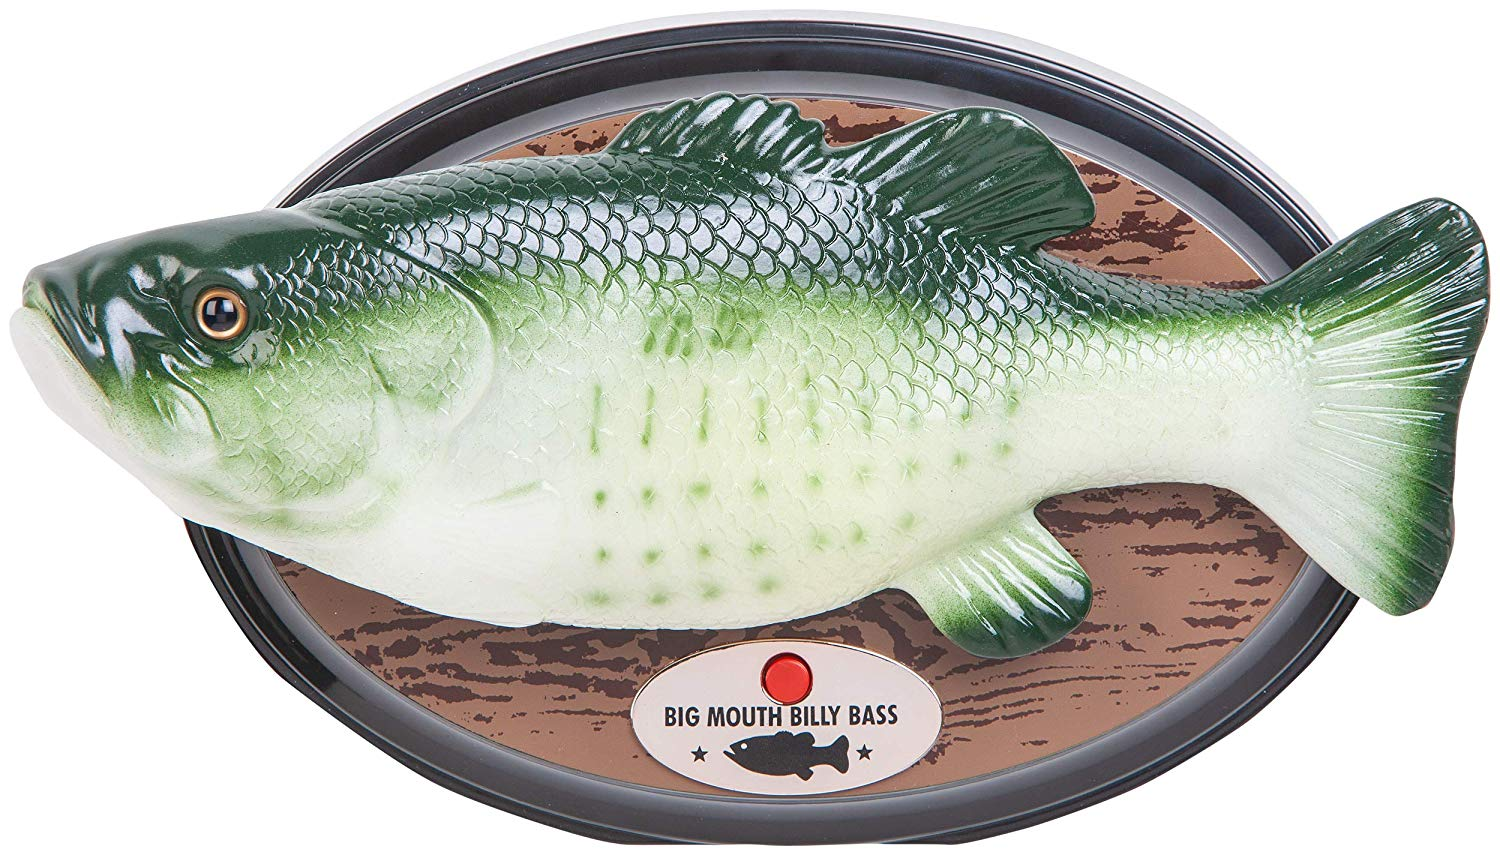 The Alexa-enabled Big Mouth Billy Bass and other twerking toys go on sale